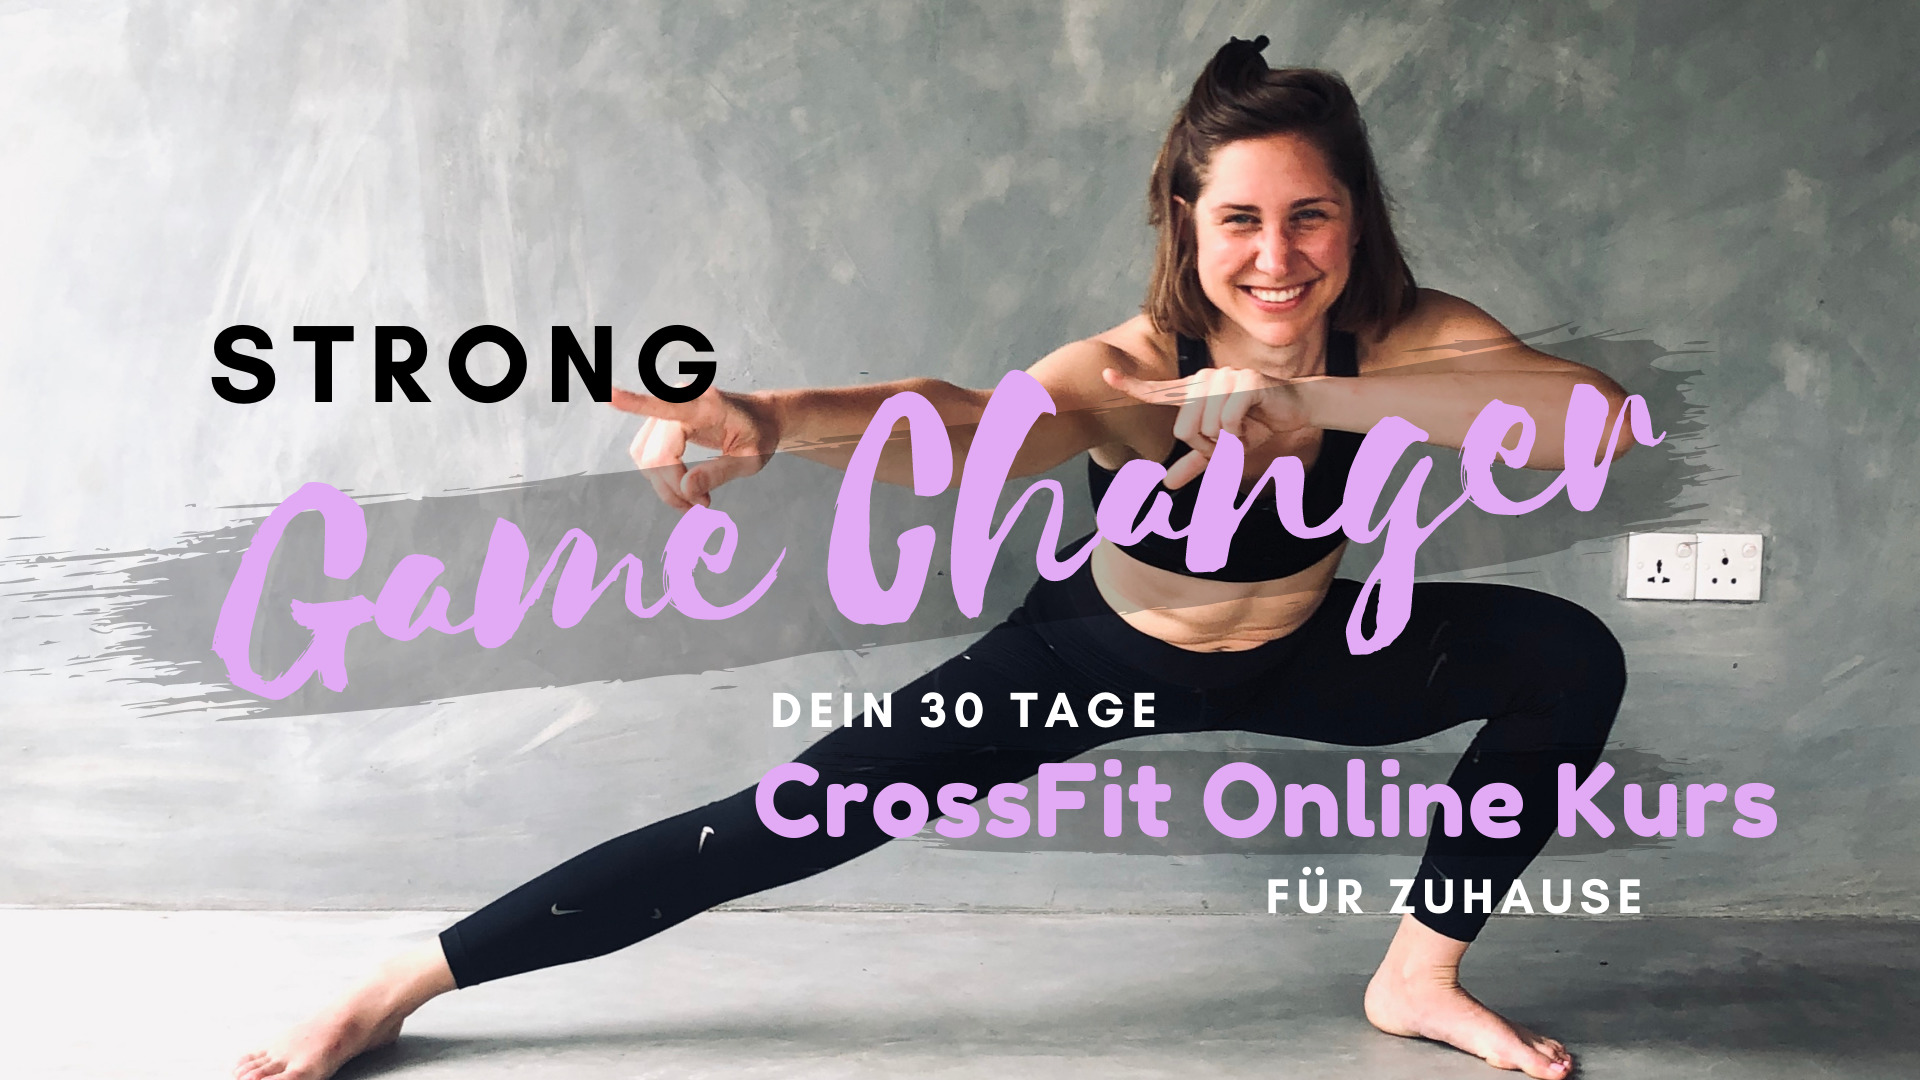 STRONG GAME CHANGER - CrossFit Online Kurs